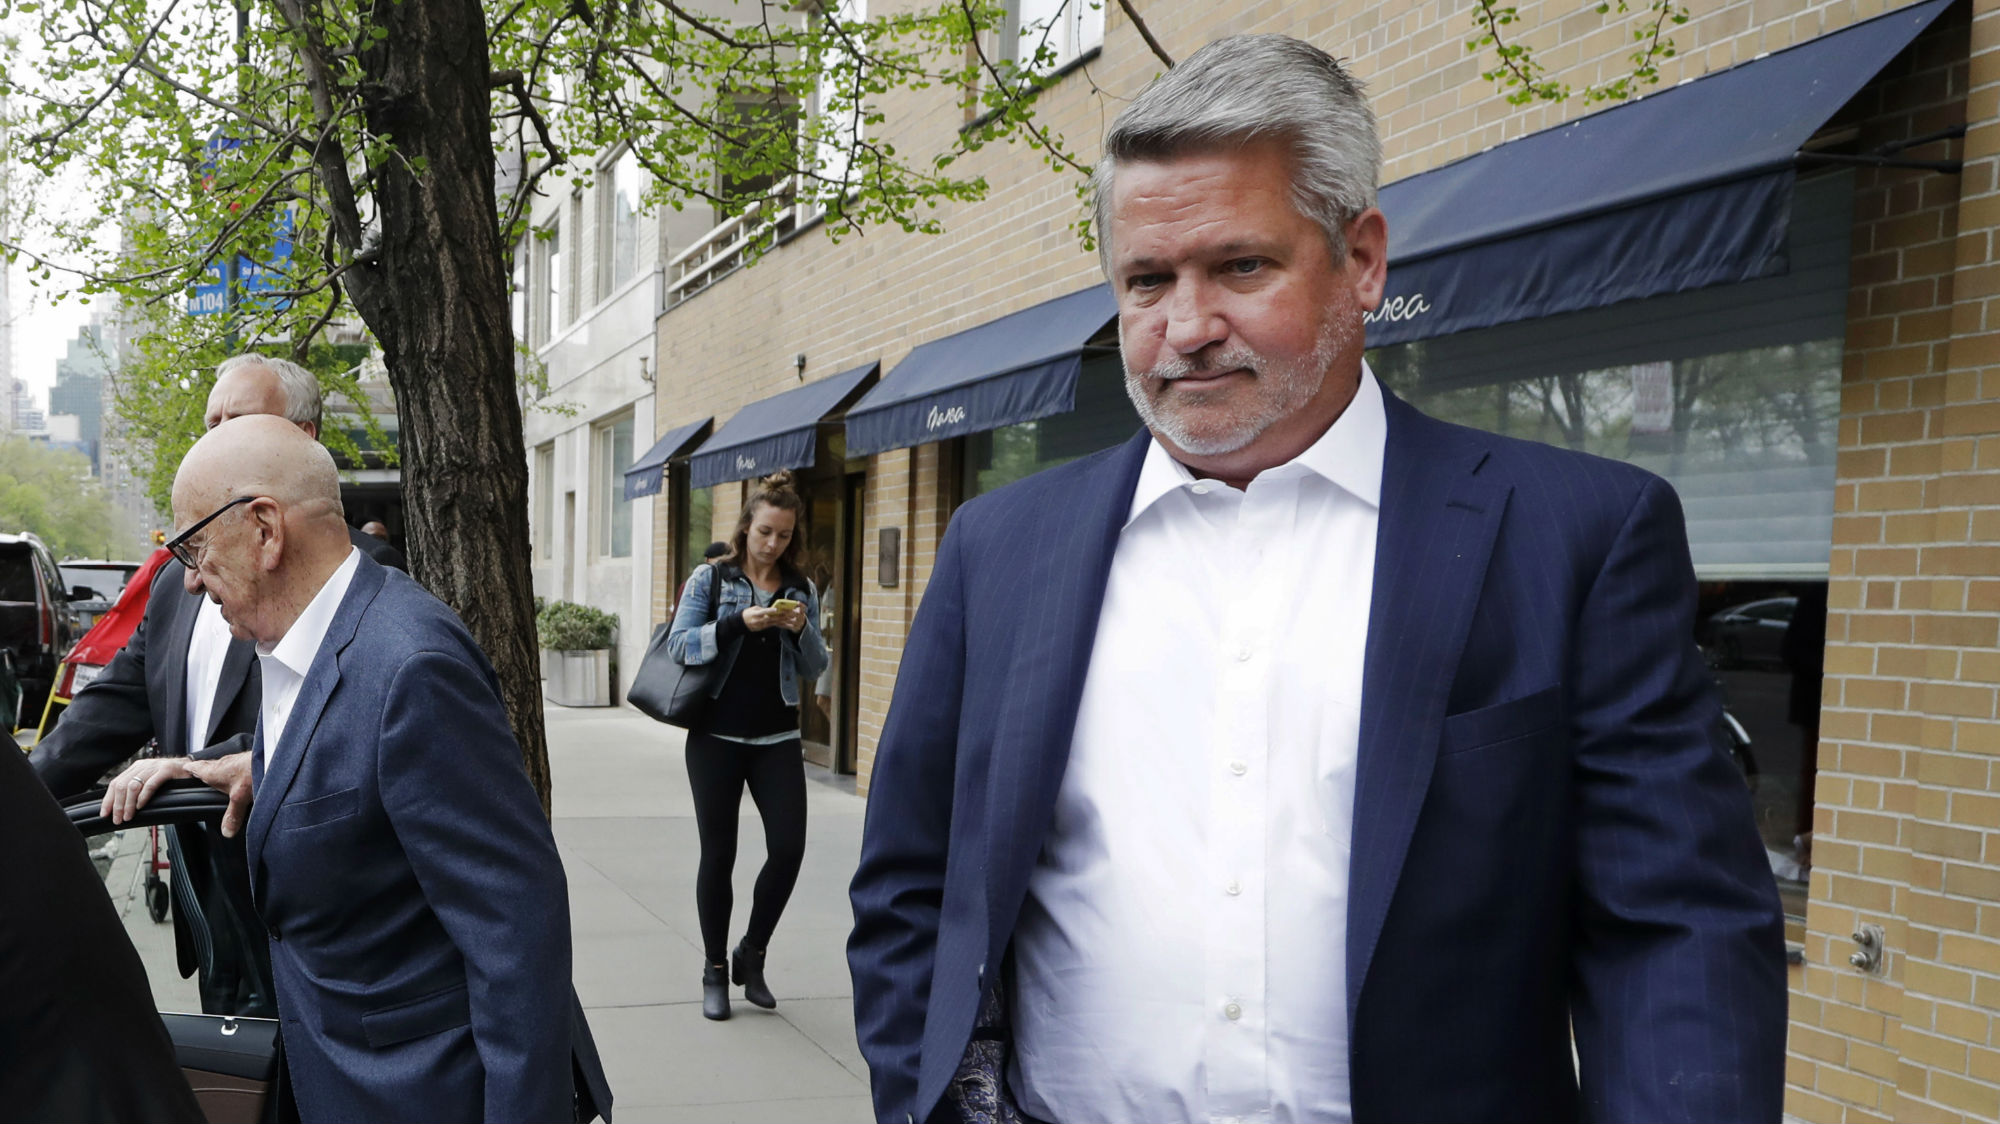 Former Fox News executive Bill Shine joins White House staff